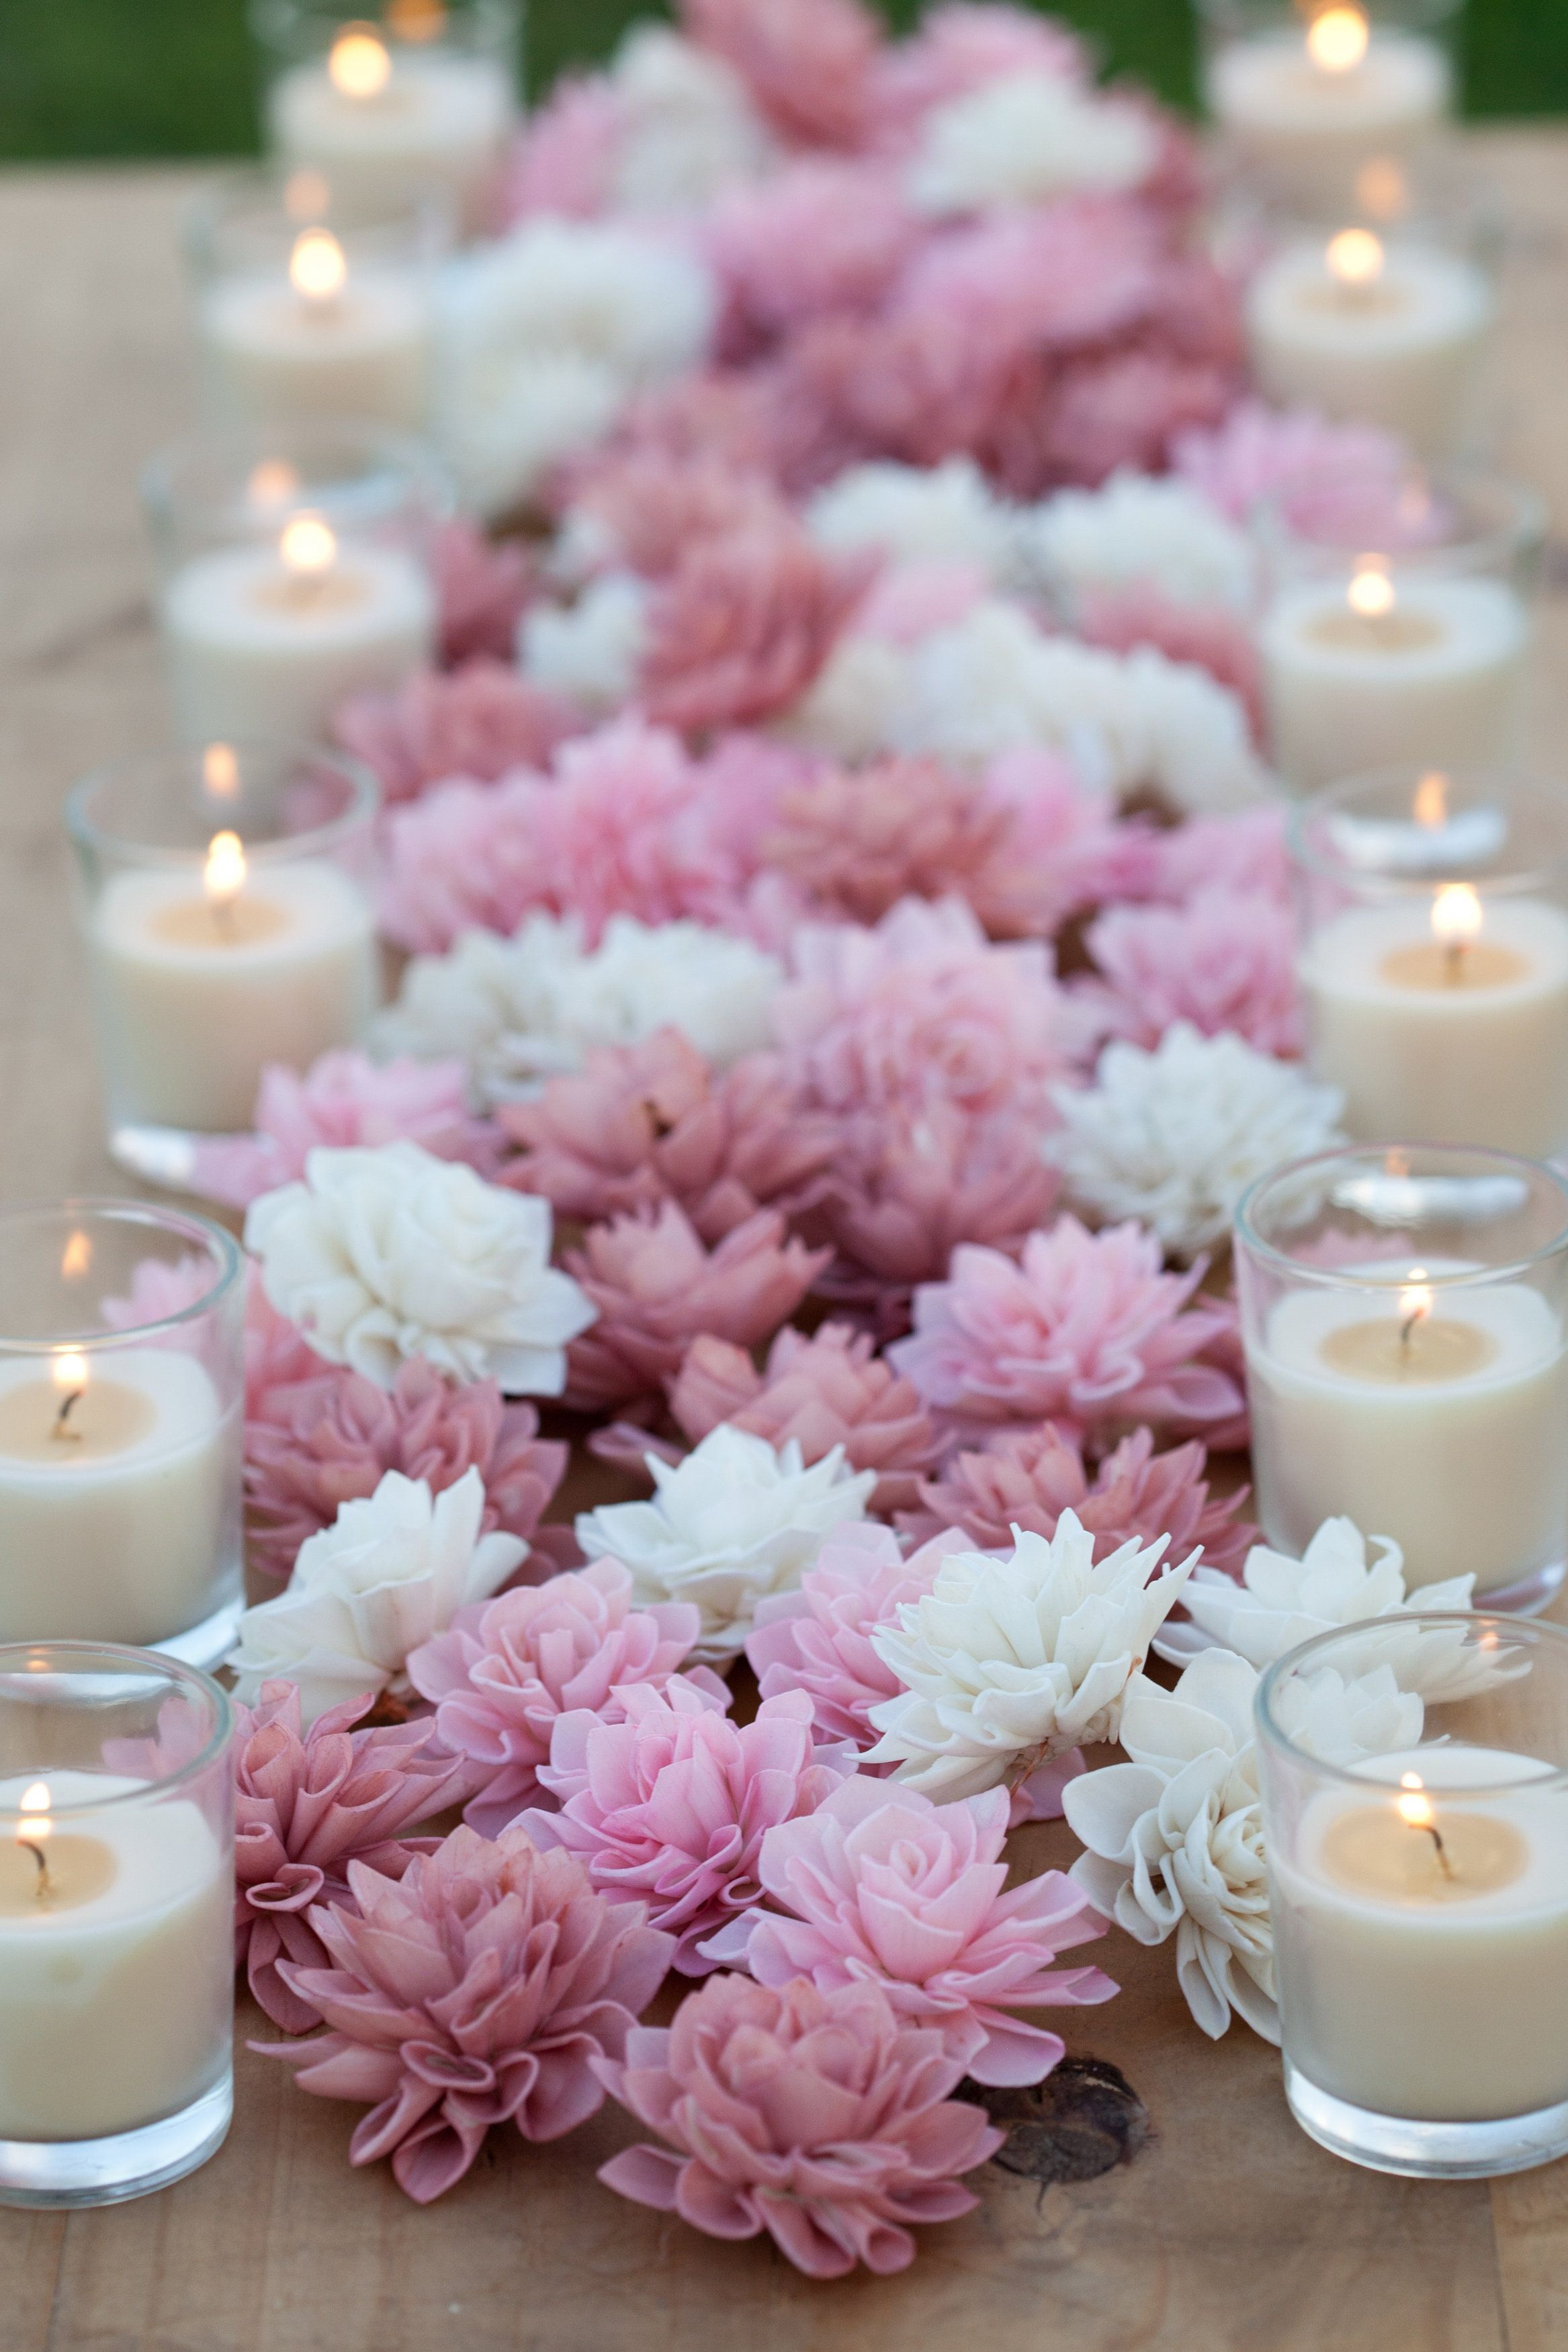 Wedding decorations with feathers   Blush Wooden Flowers Wedding Decorations Wedding Flowers